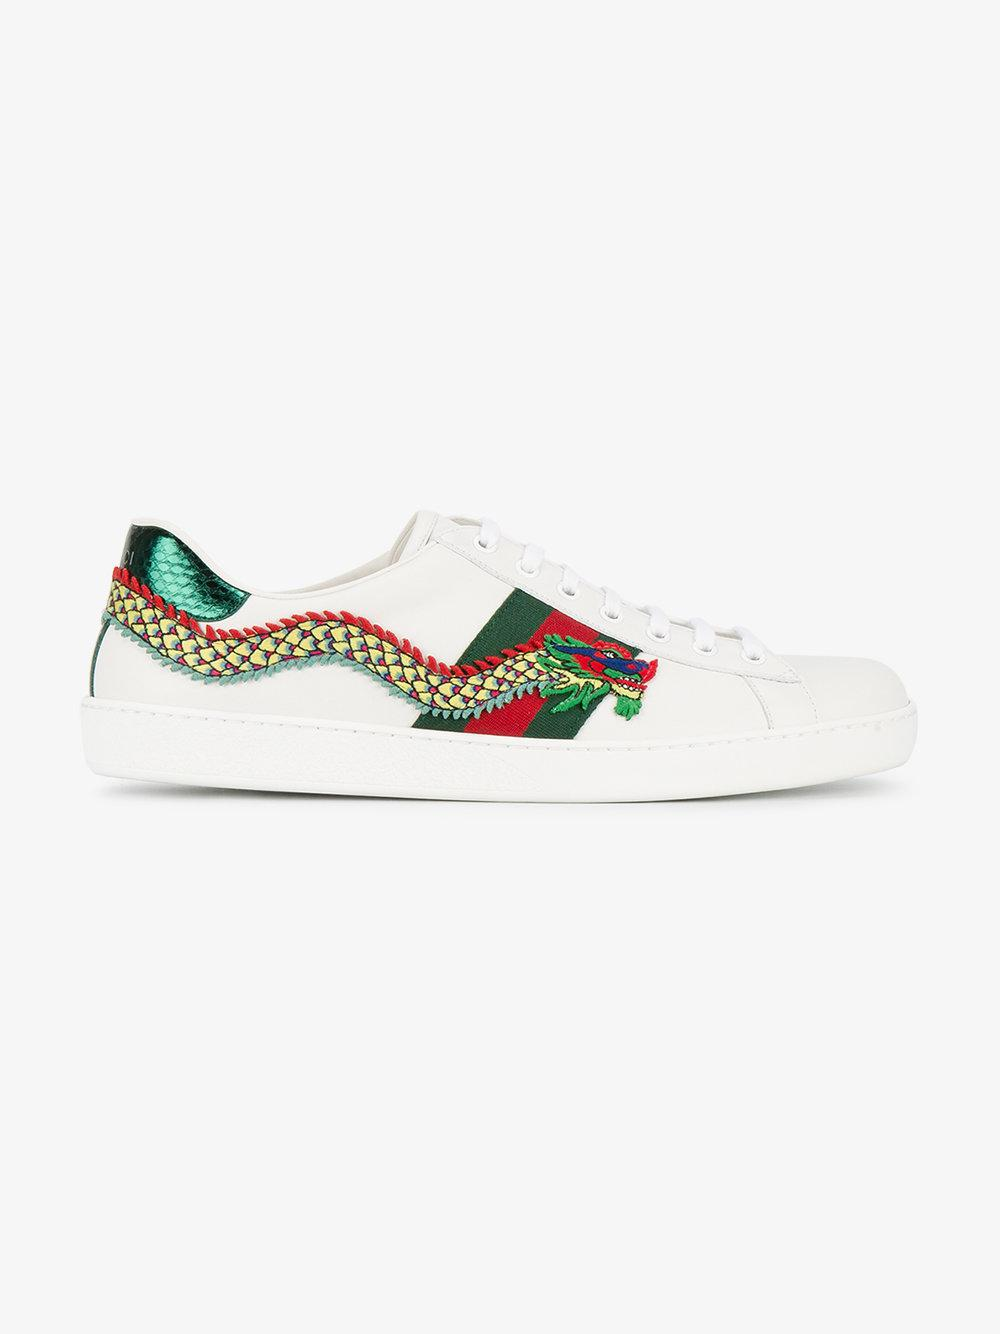 a70ace2eb17 Lyst - Gucci Dragon Embroidered Ace Sneakers in White for Men